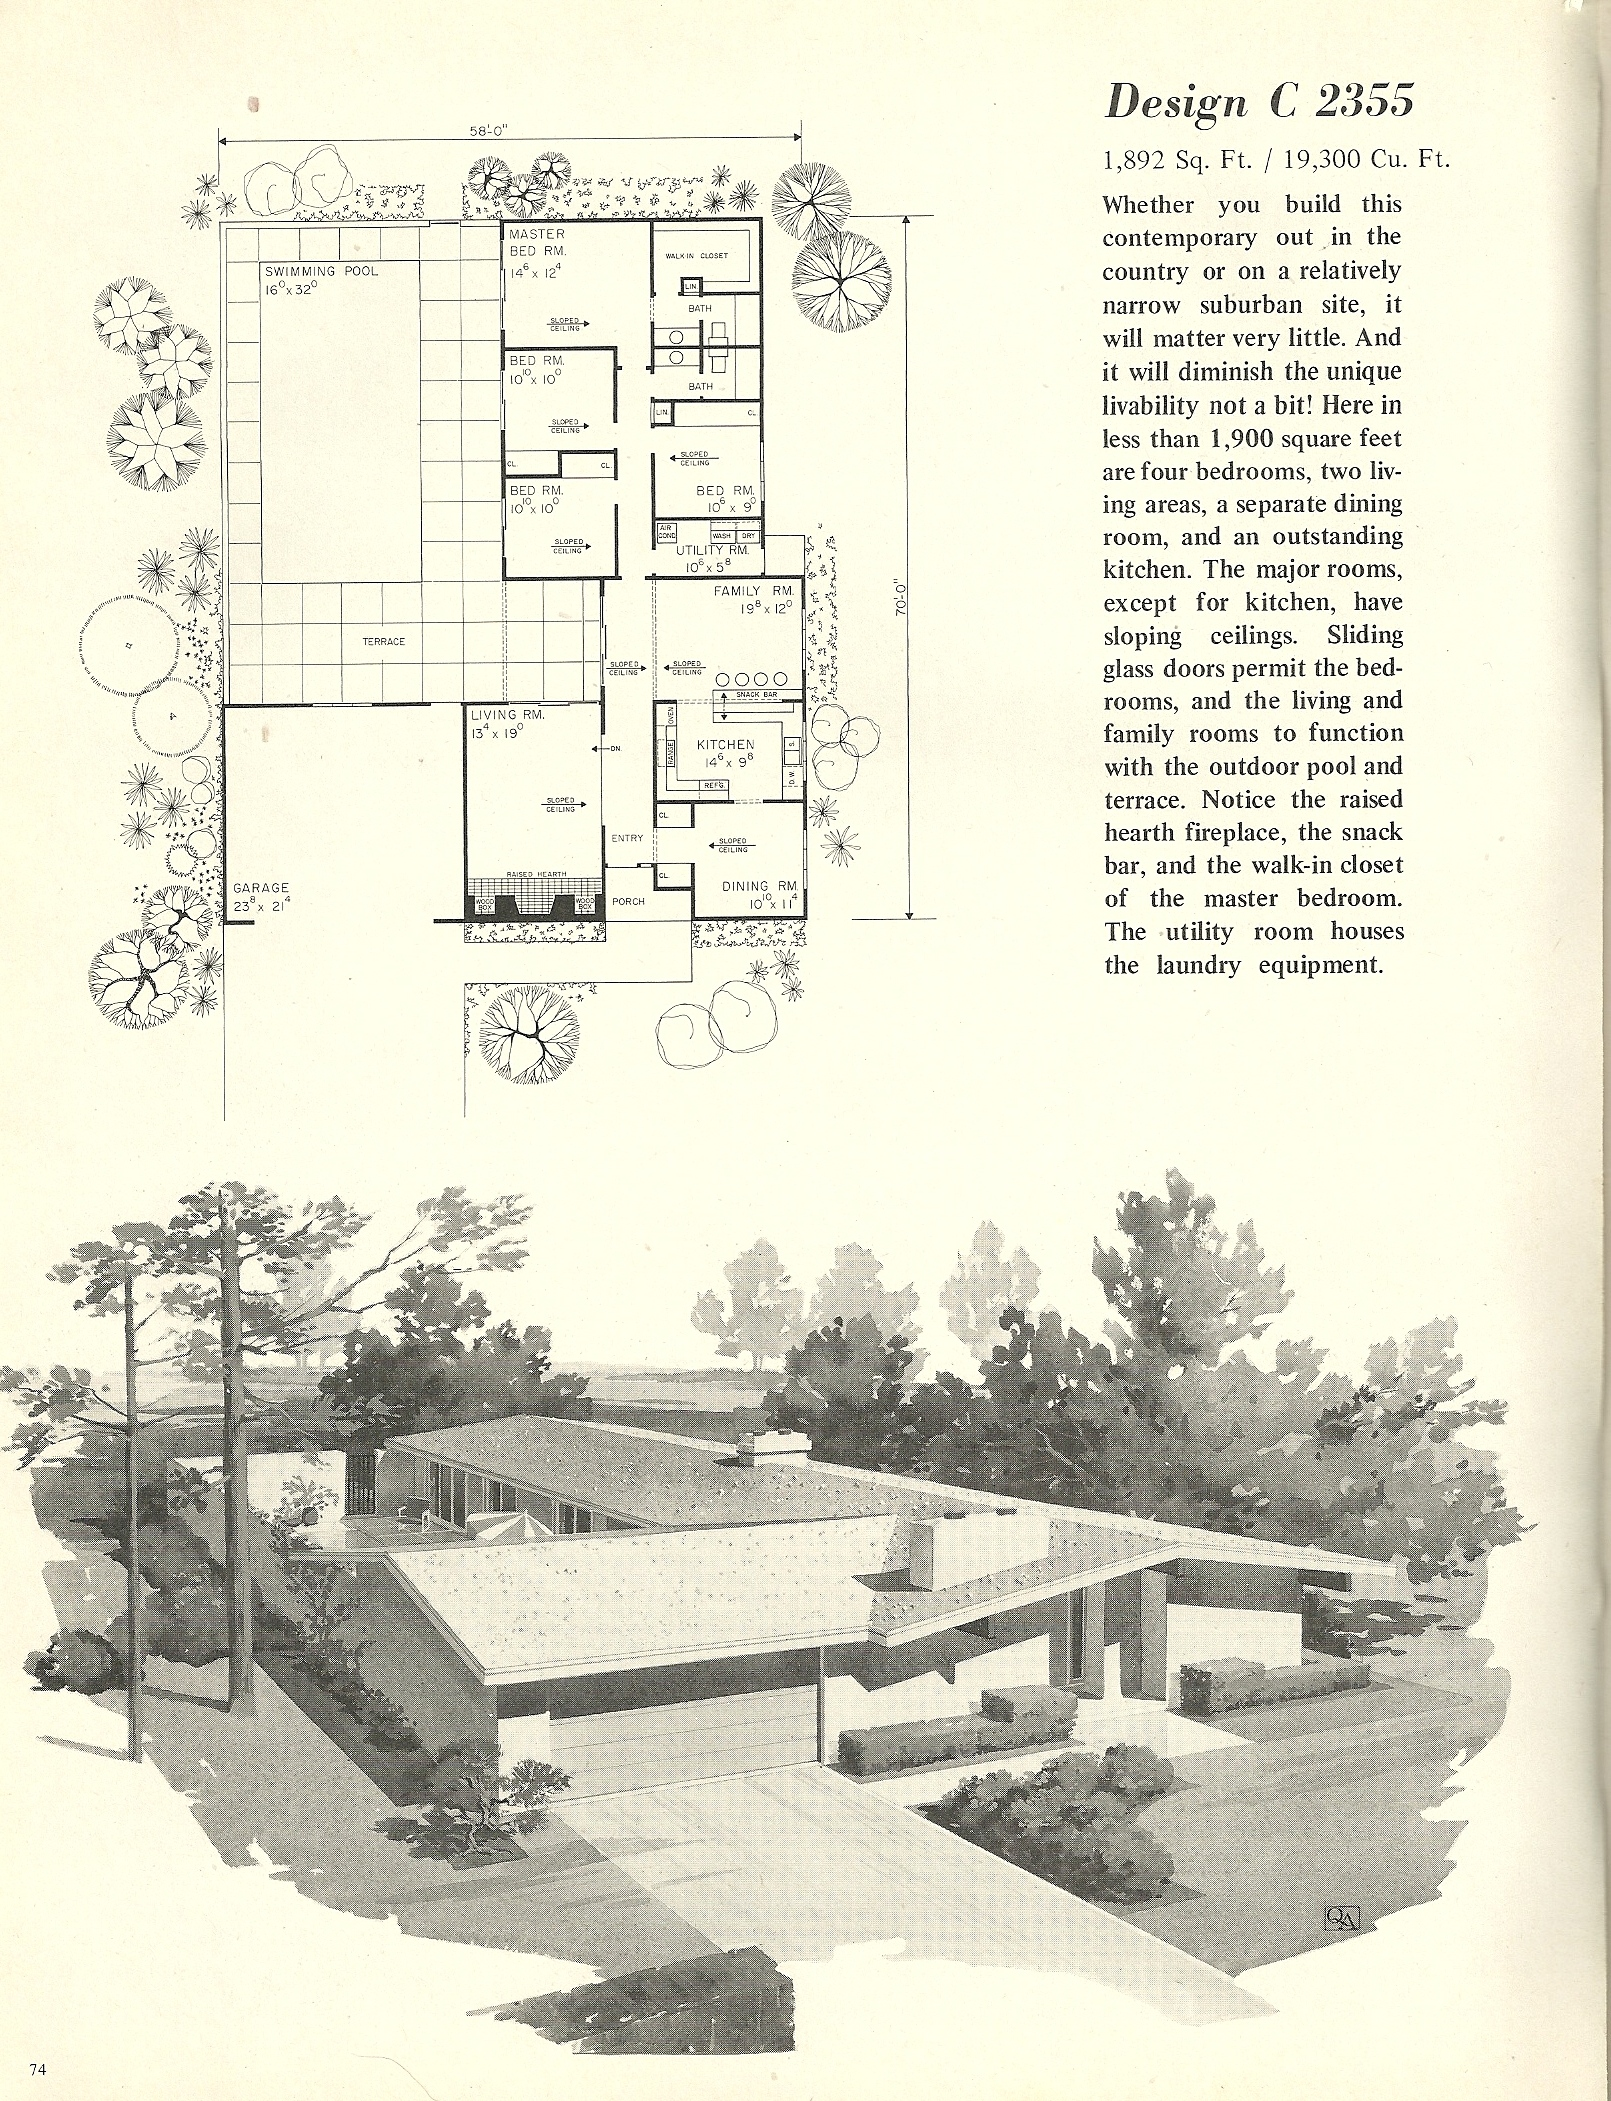 Vintage house plans 2355 antique alter ego for Retro modern house plans